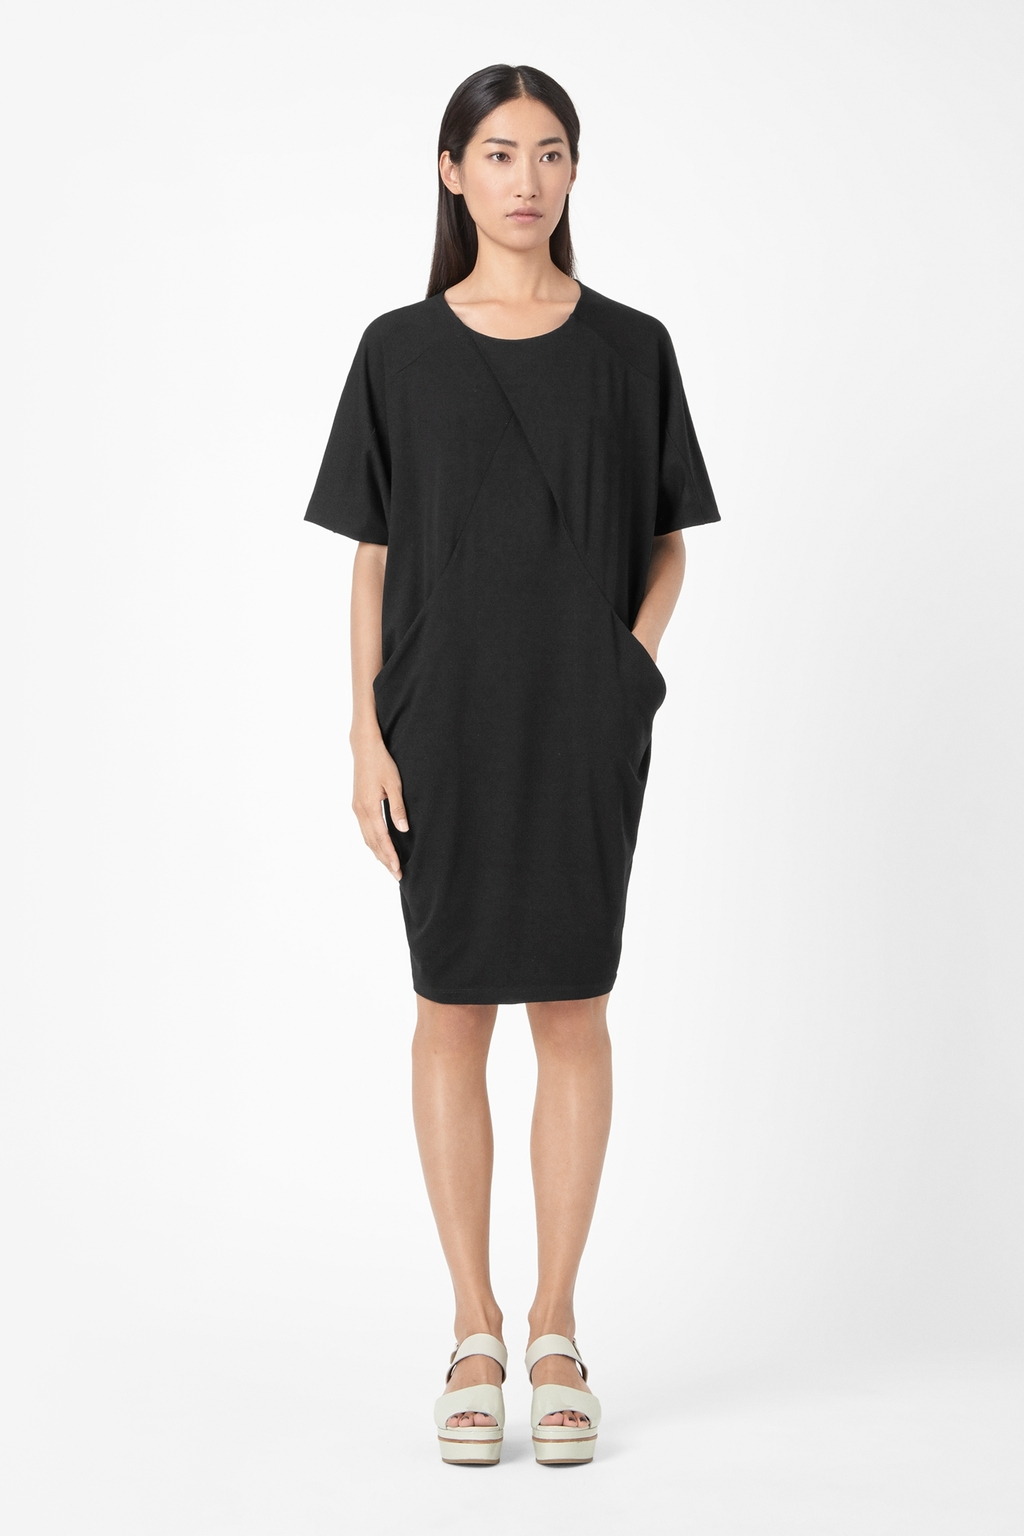 Oversized Jersey Dress - style: shift; neckline: round neck; fit: loose; pattern: plain; predominant colour: black; occasions: casual, evening; length: on the knee; fibres: viscose/rayon - stretch; sleeve length: half sleeve; sleeve style: standard; pattern type: fabric; texture group: jersey - stretchy/drapey; season: s/s 2014